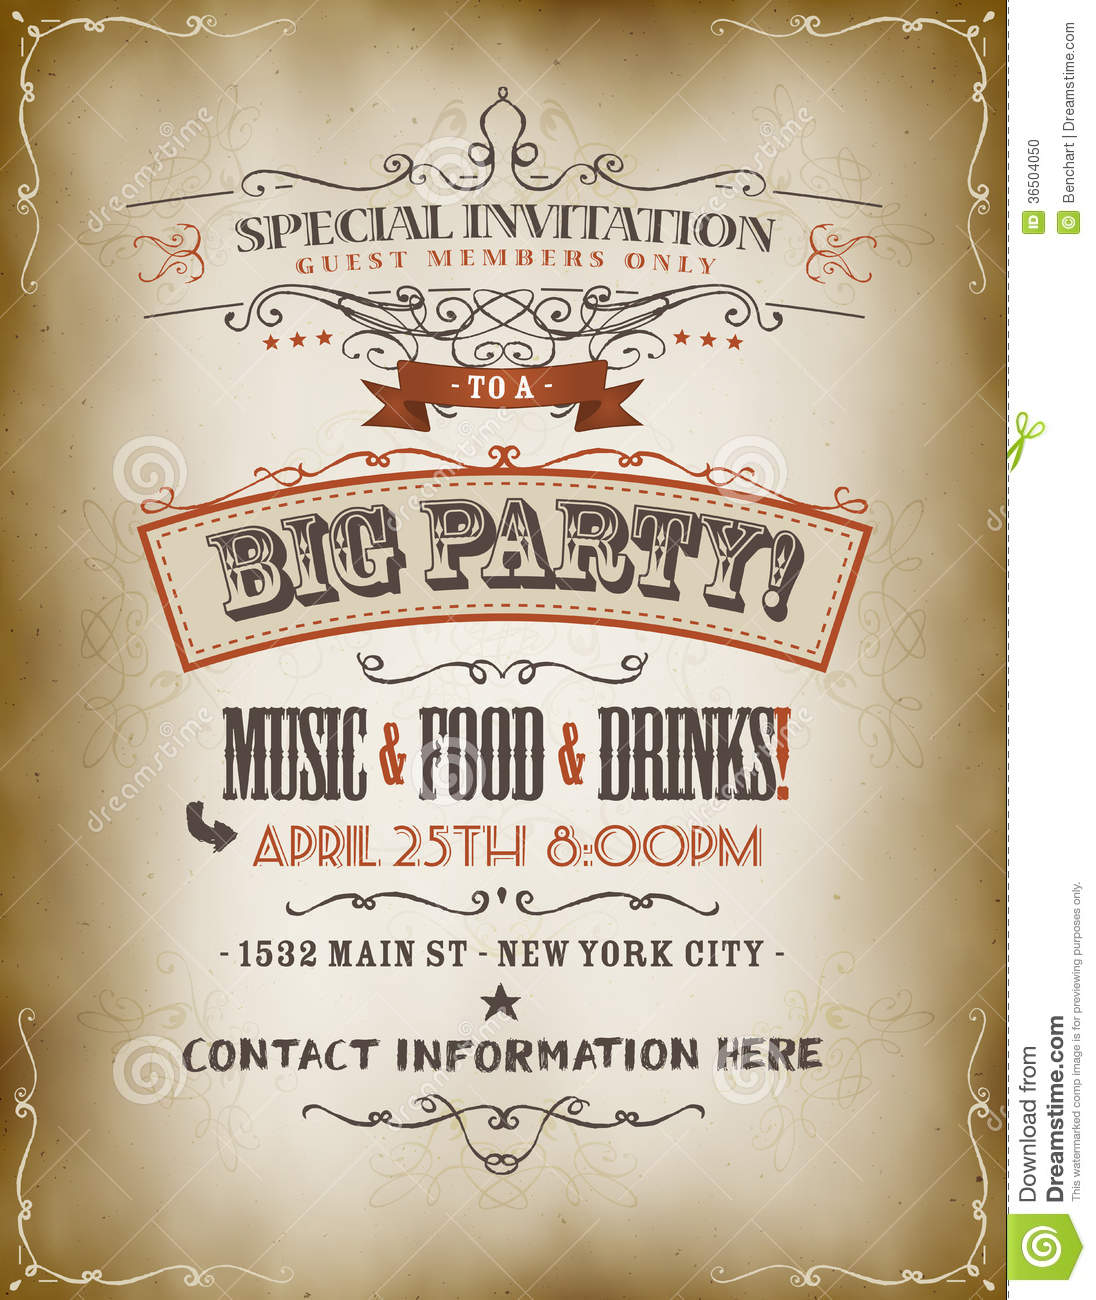 Vintage Big Party Invitation Poster Stock Vector - Illustration of ...